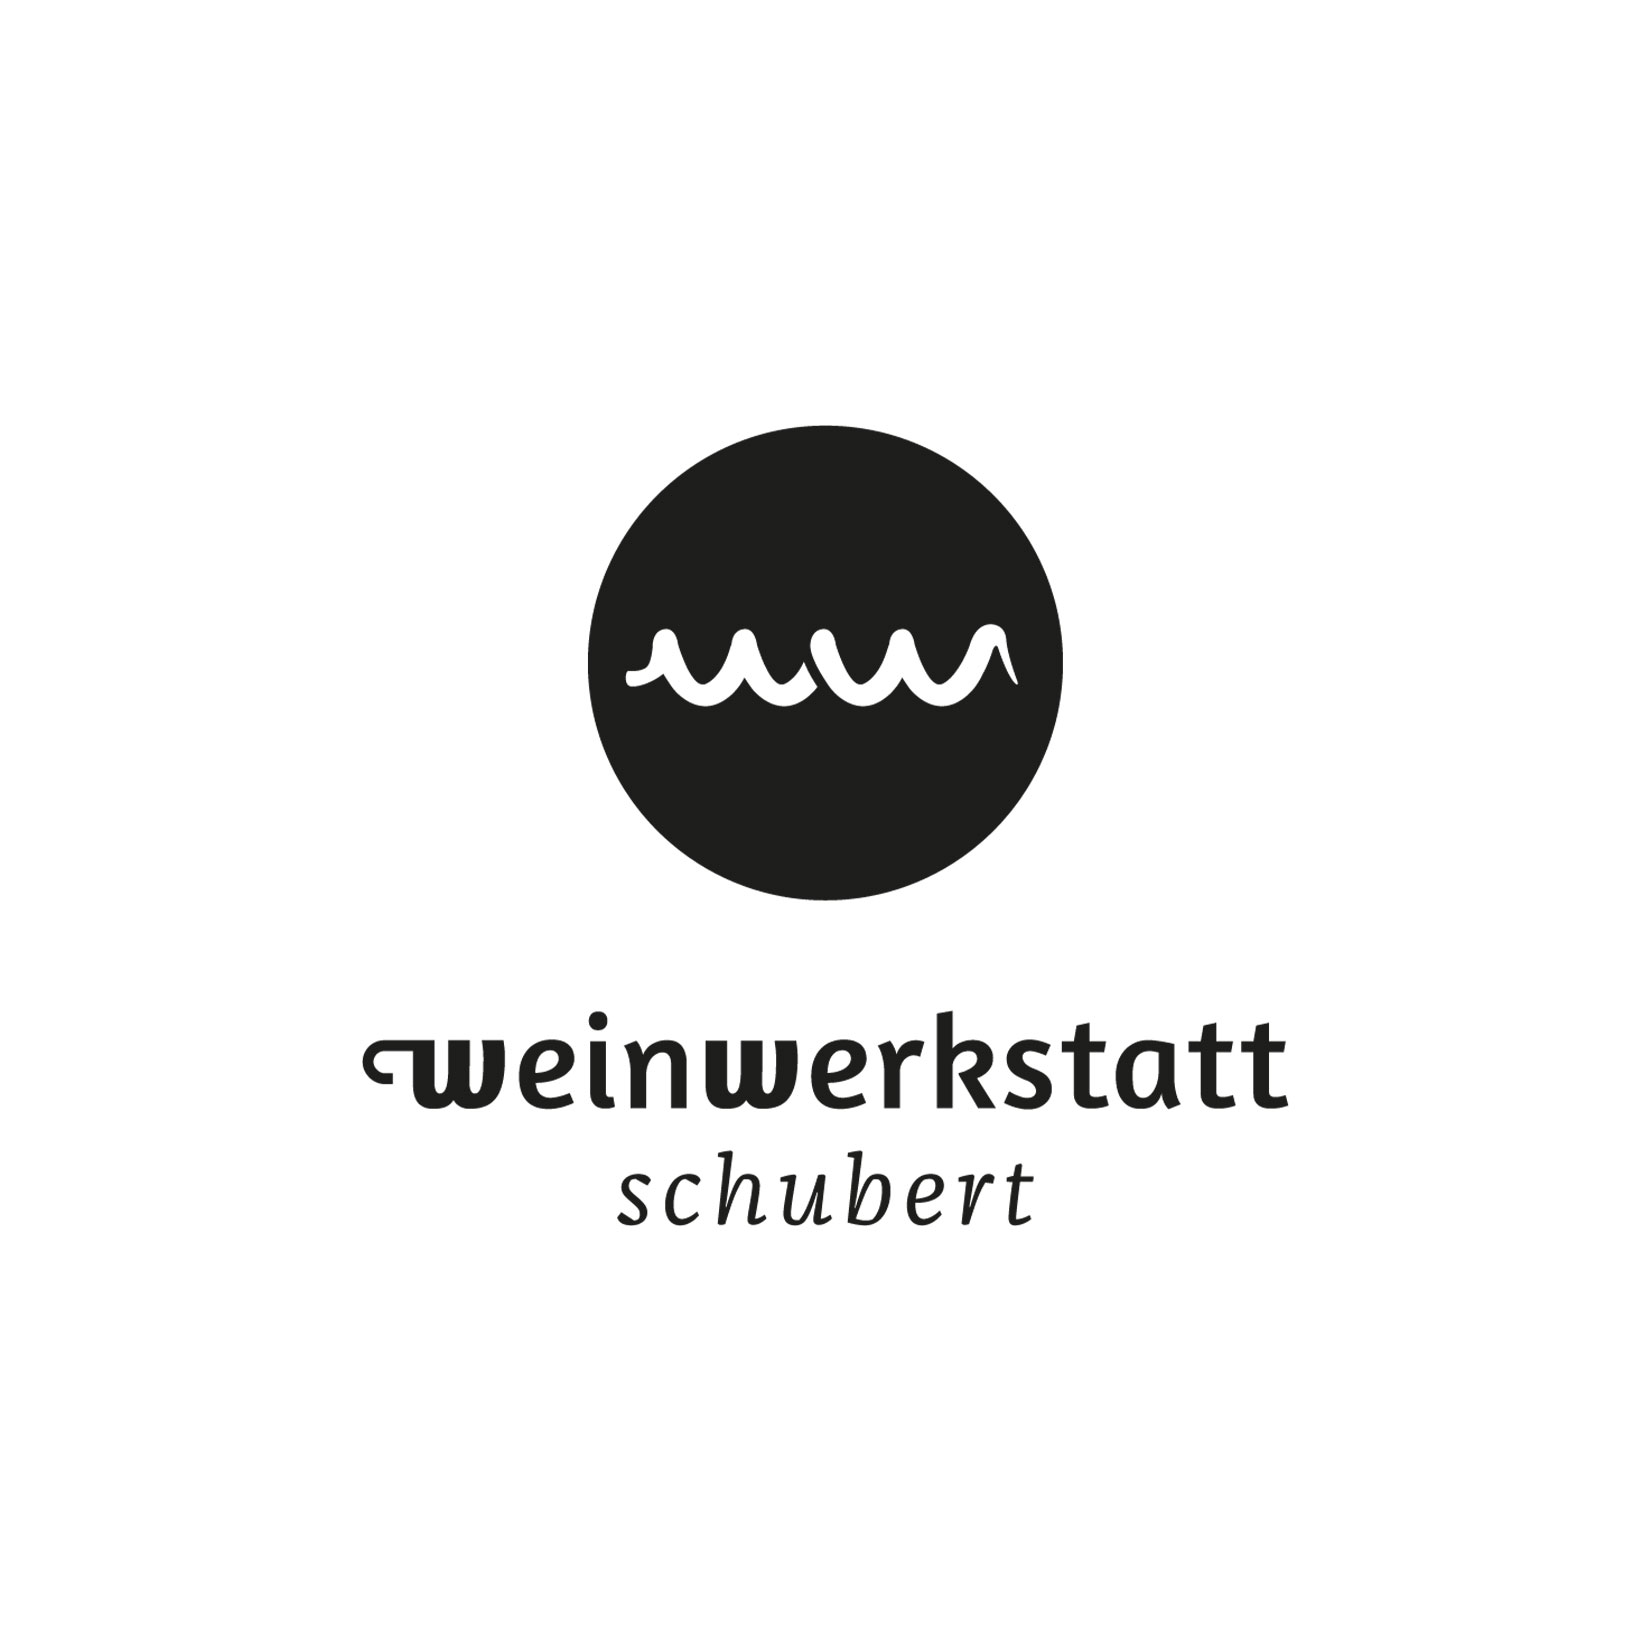 Wein Corporate Design Würzburg